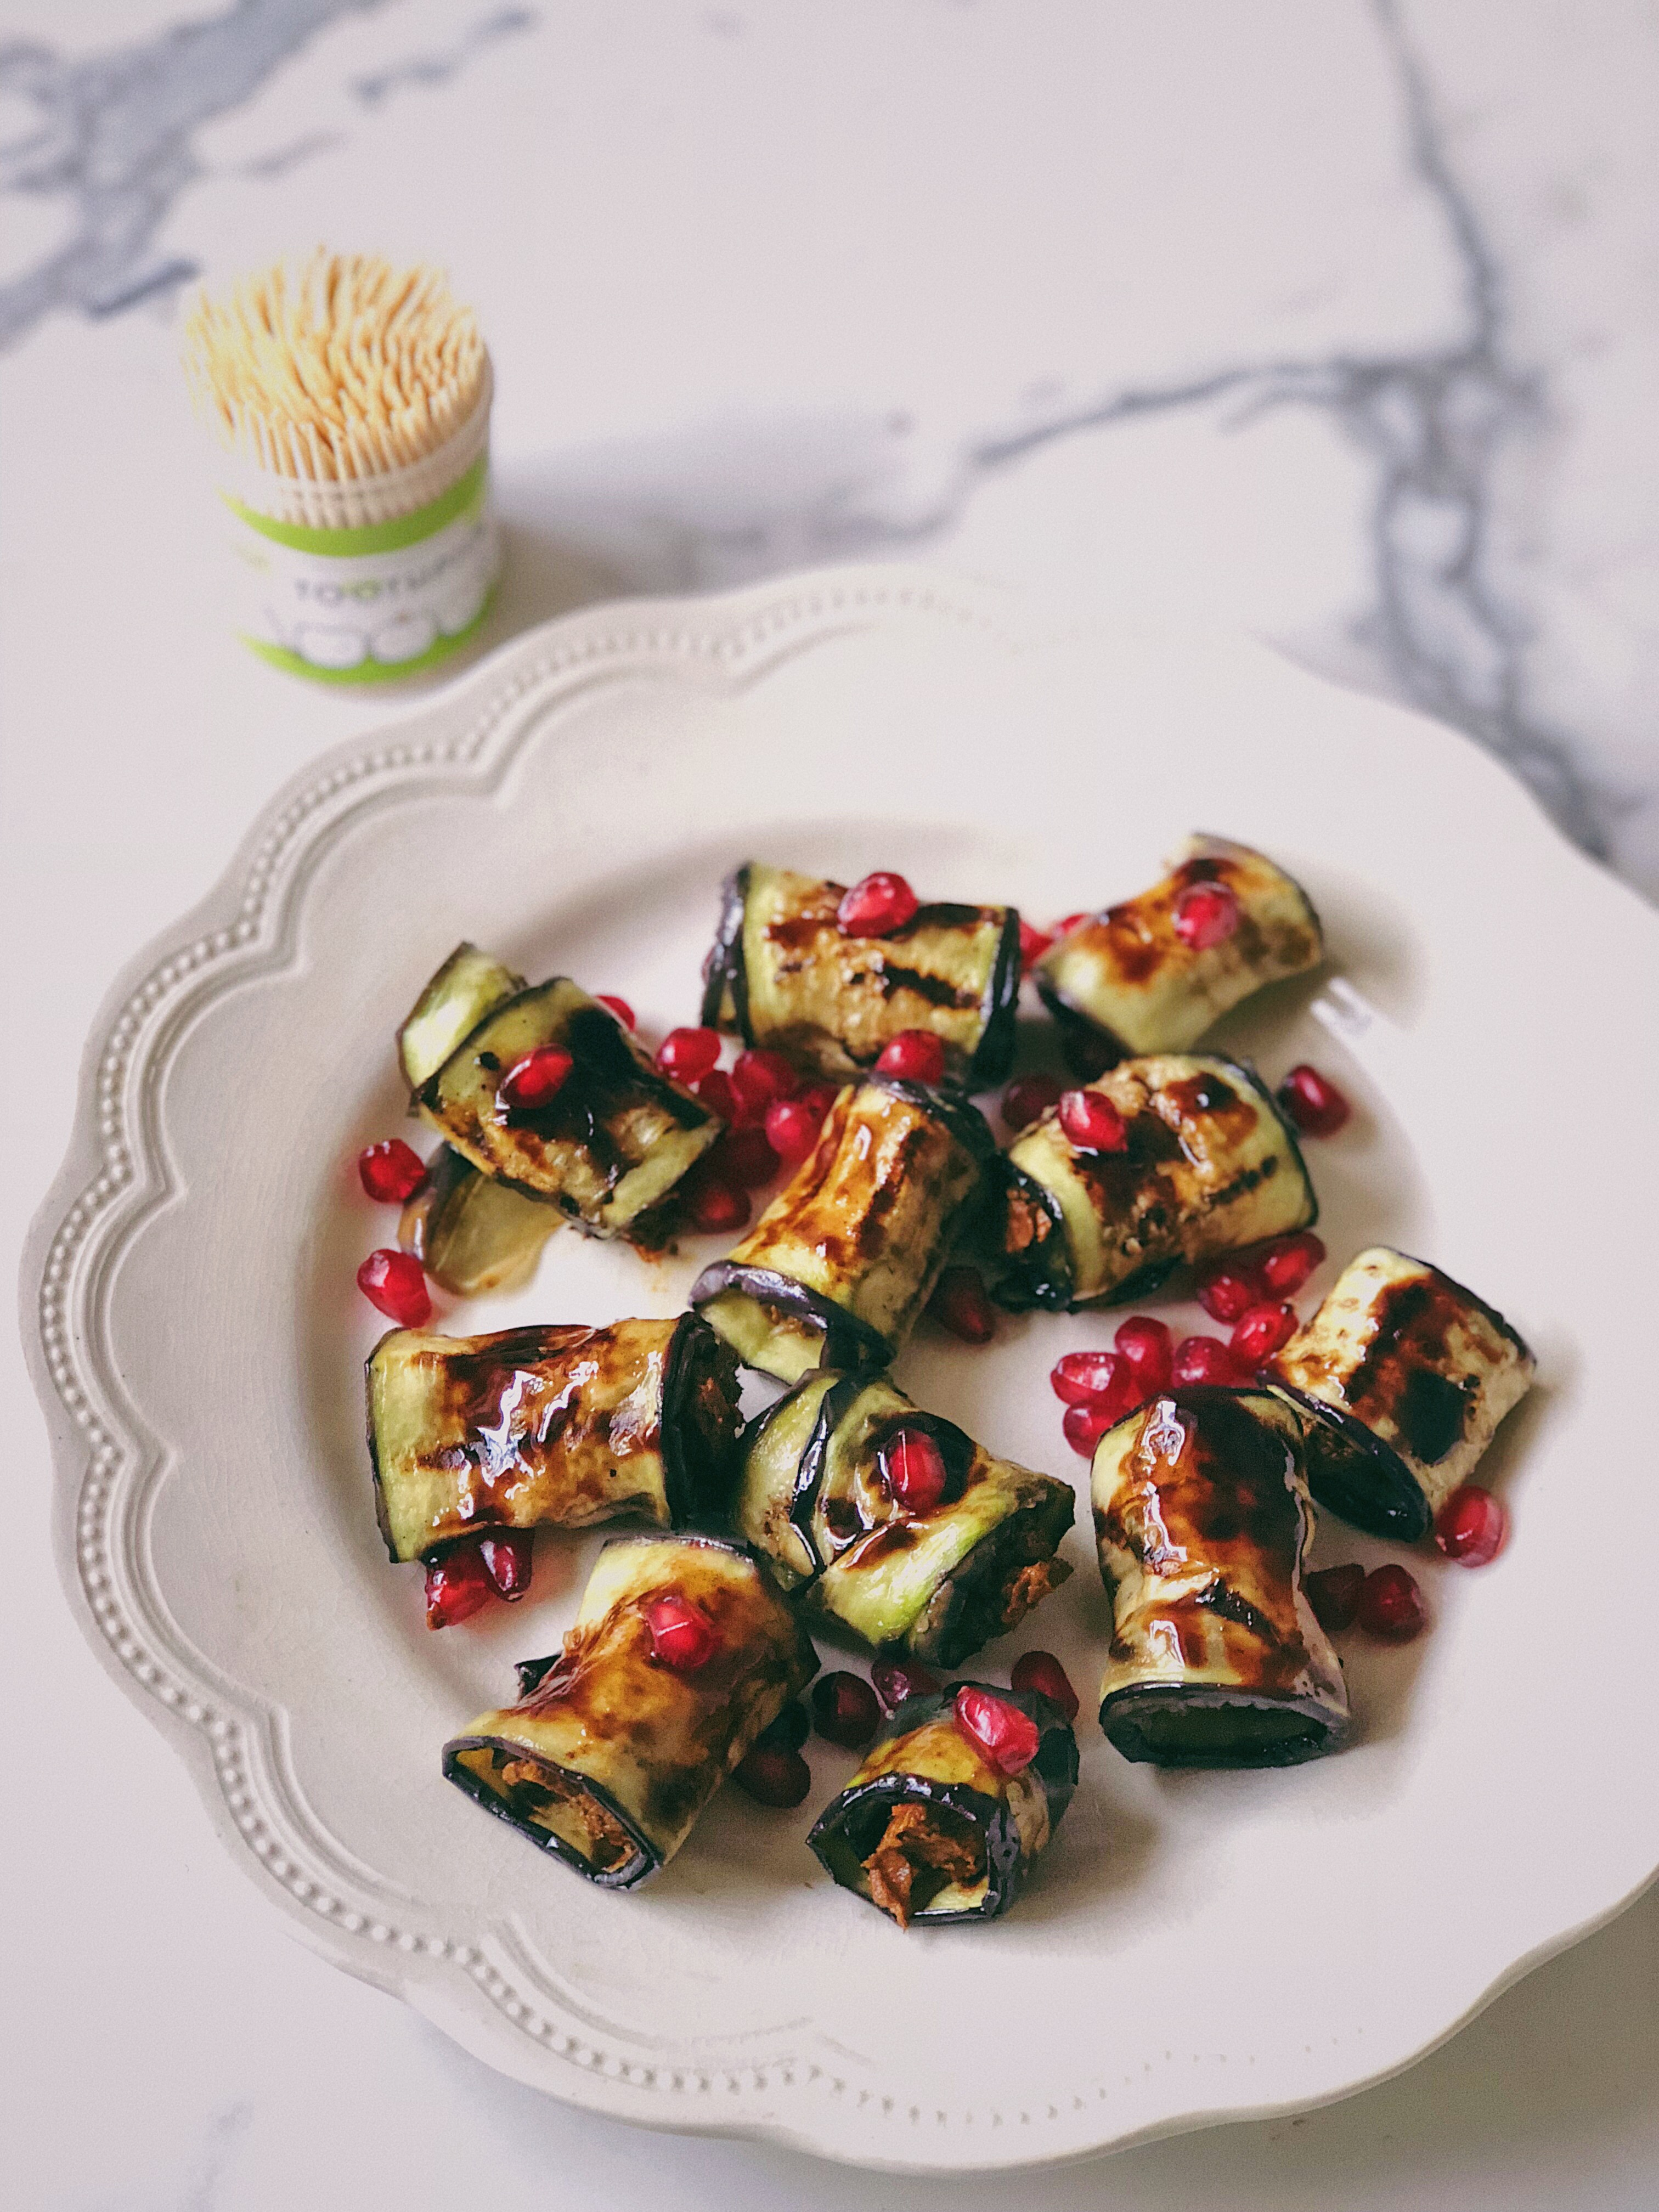 Eggplant Roll-Ups With Adjika